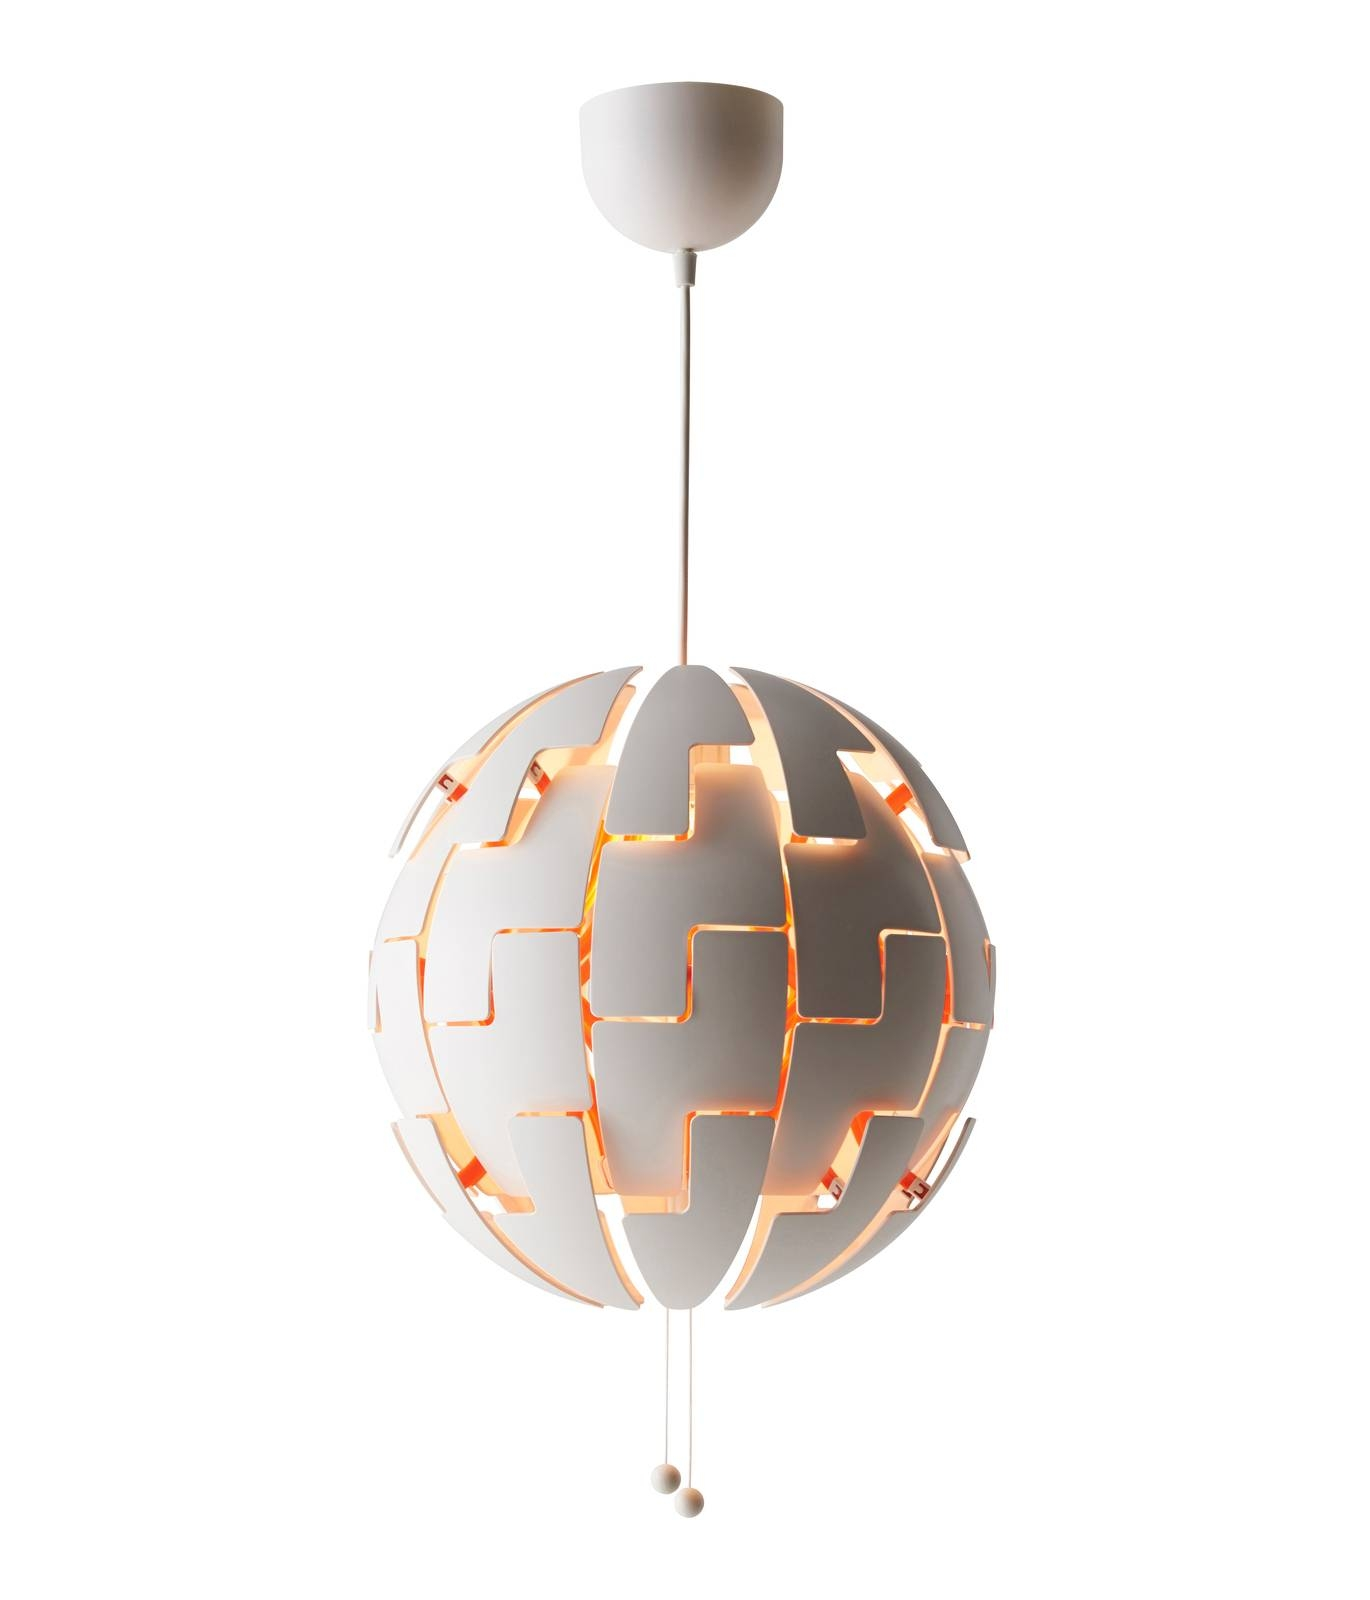 34 Ikea Globe Lamp, Ikea Fado Table Lamp Creates A Soft, Cosy Mood inside Ikea Globe Pendant Lights (Image 1 of 15)